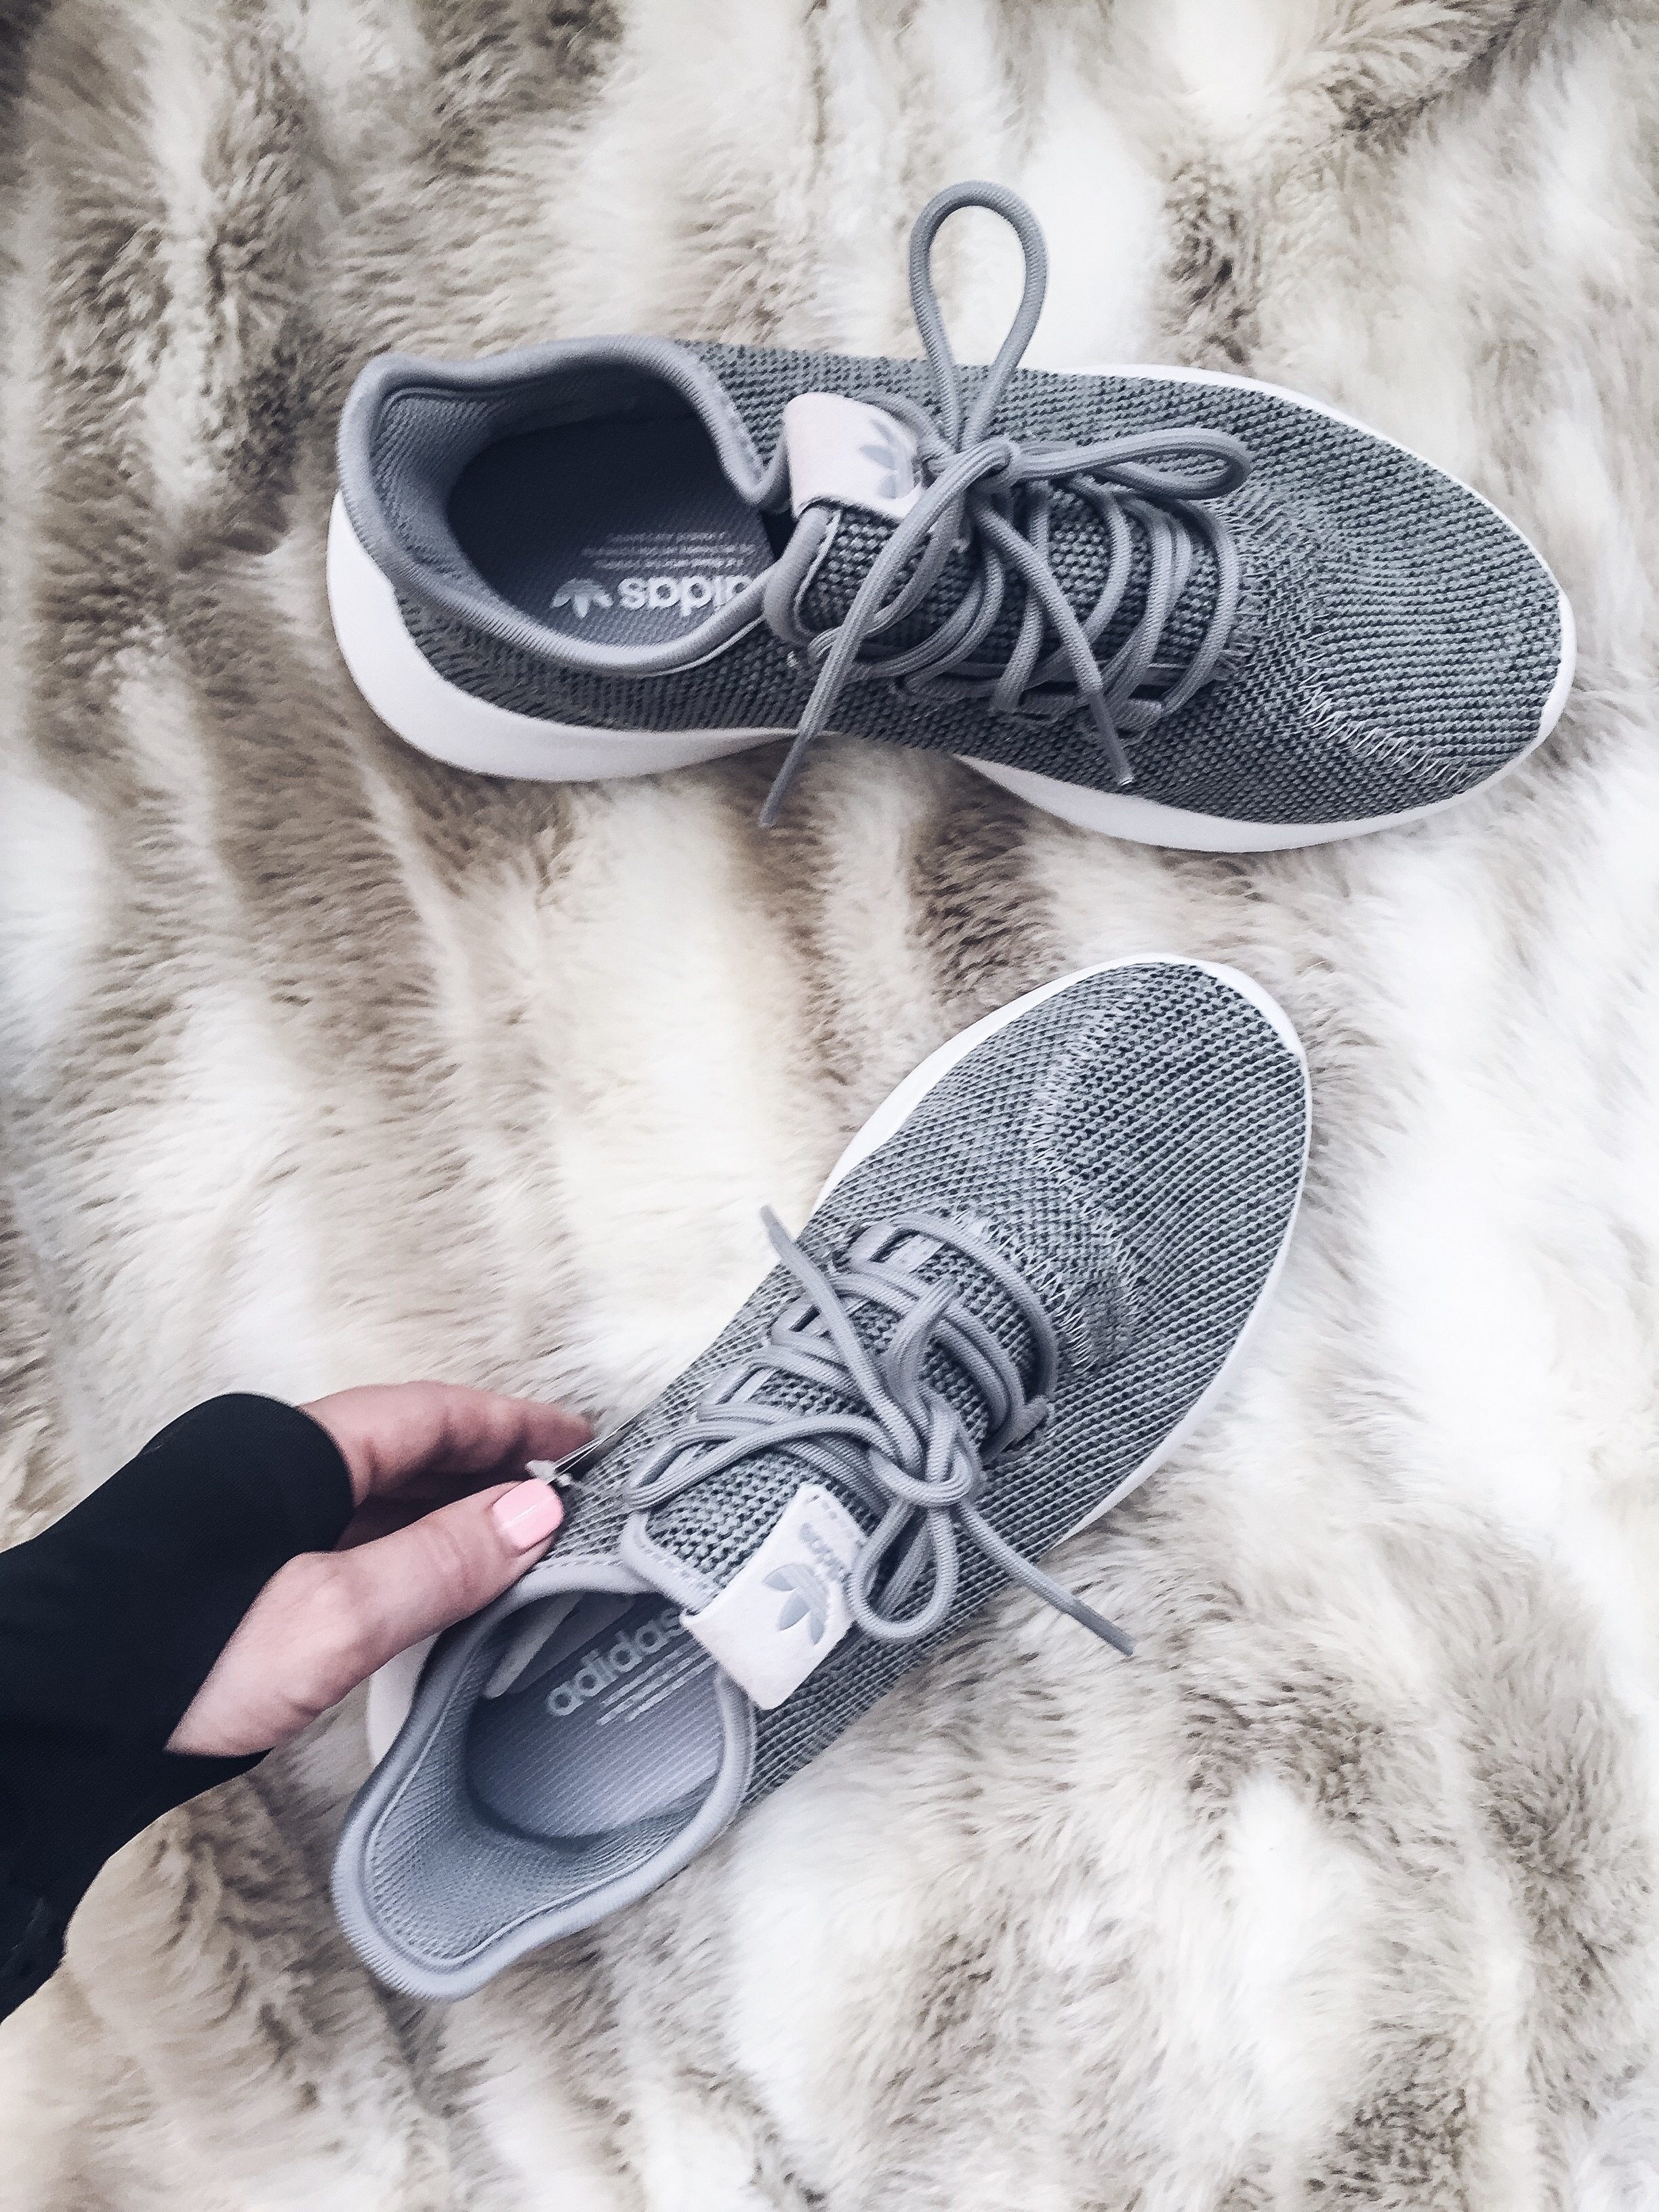 Houston fashion and lifestyle blogger Tiffany Jais of Flaunt and Center doing an instagram roundup featuring the addidas tubular sneakers. Click here to read more! | Adidas, style, what's trending in women's fashion